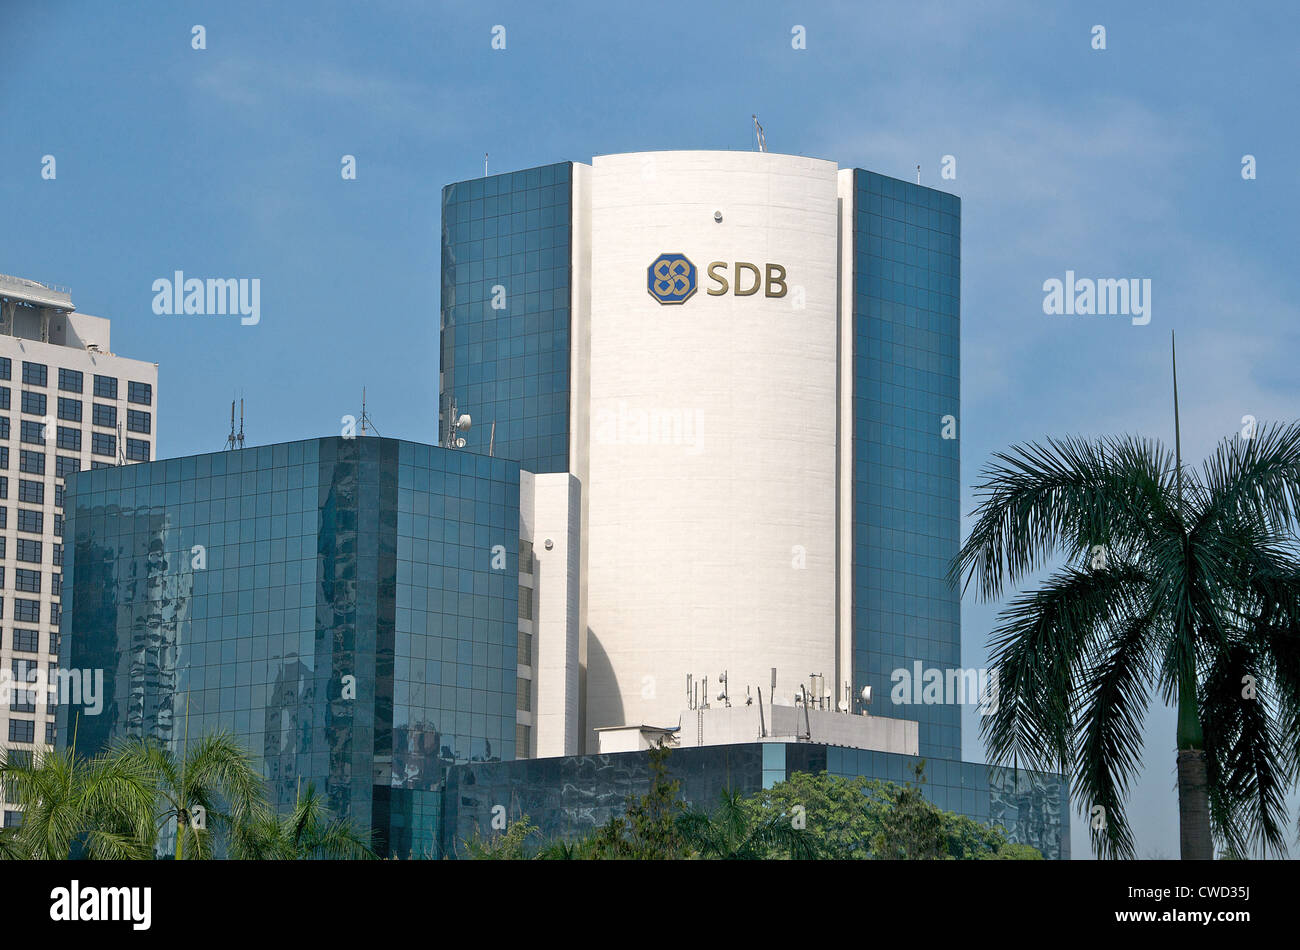 Sdb Stockfotos & Sdb Bilder - Alamy